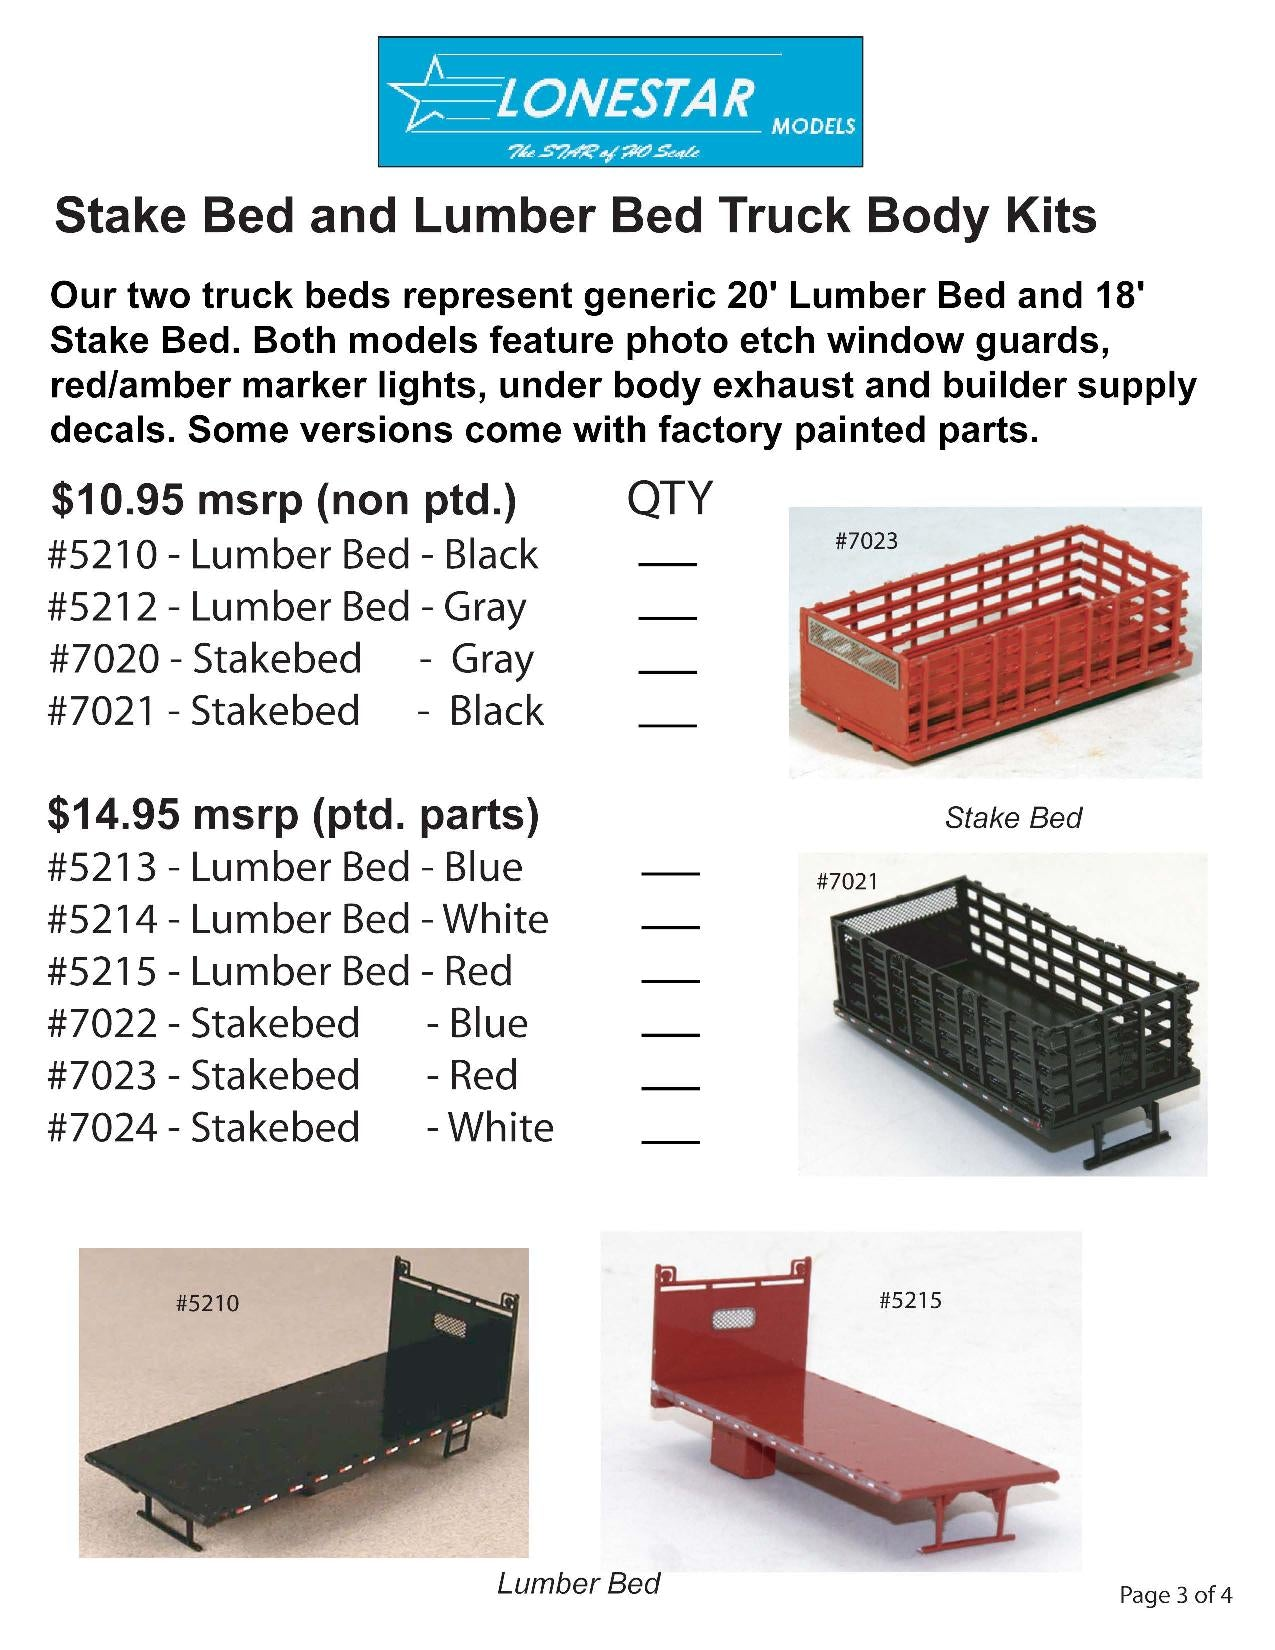 Lonestar Truck and Trailer Crates